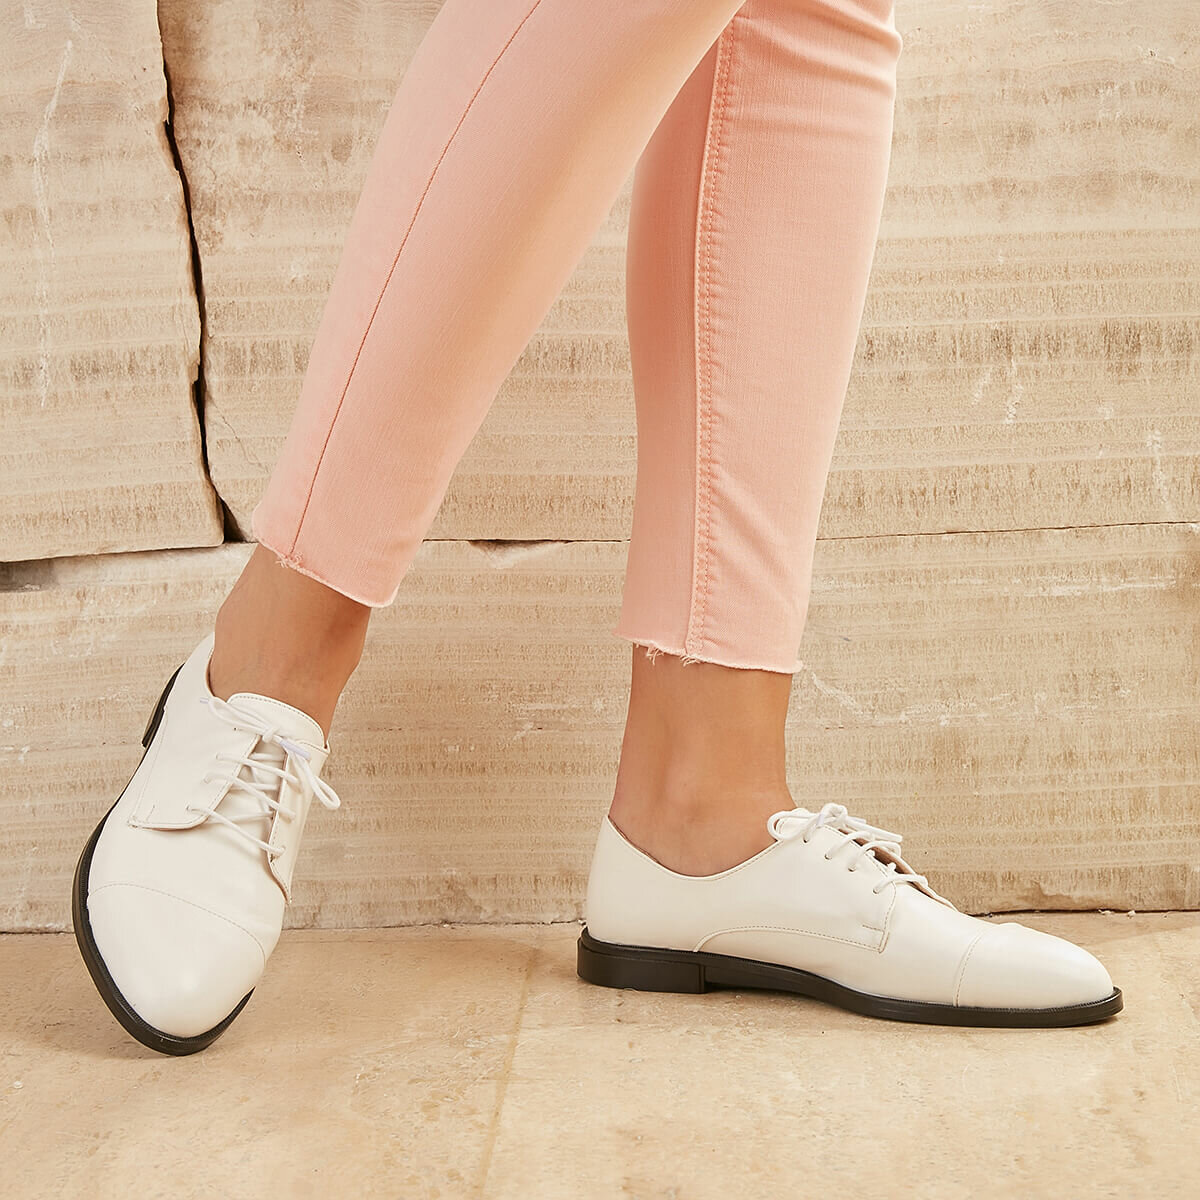 FLO CREVEY01Z White Women Oxford Shoes BUTIGO